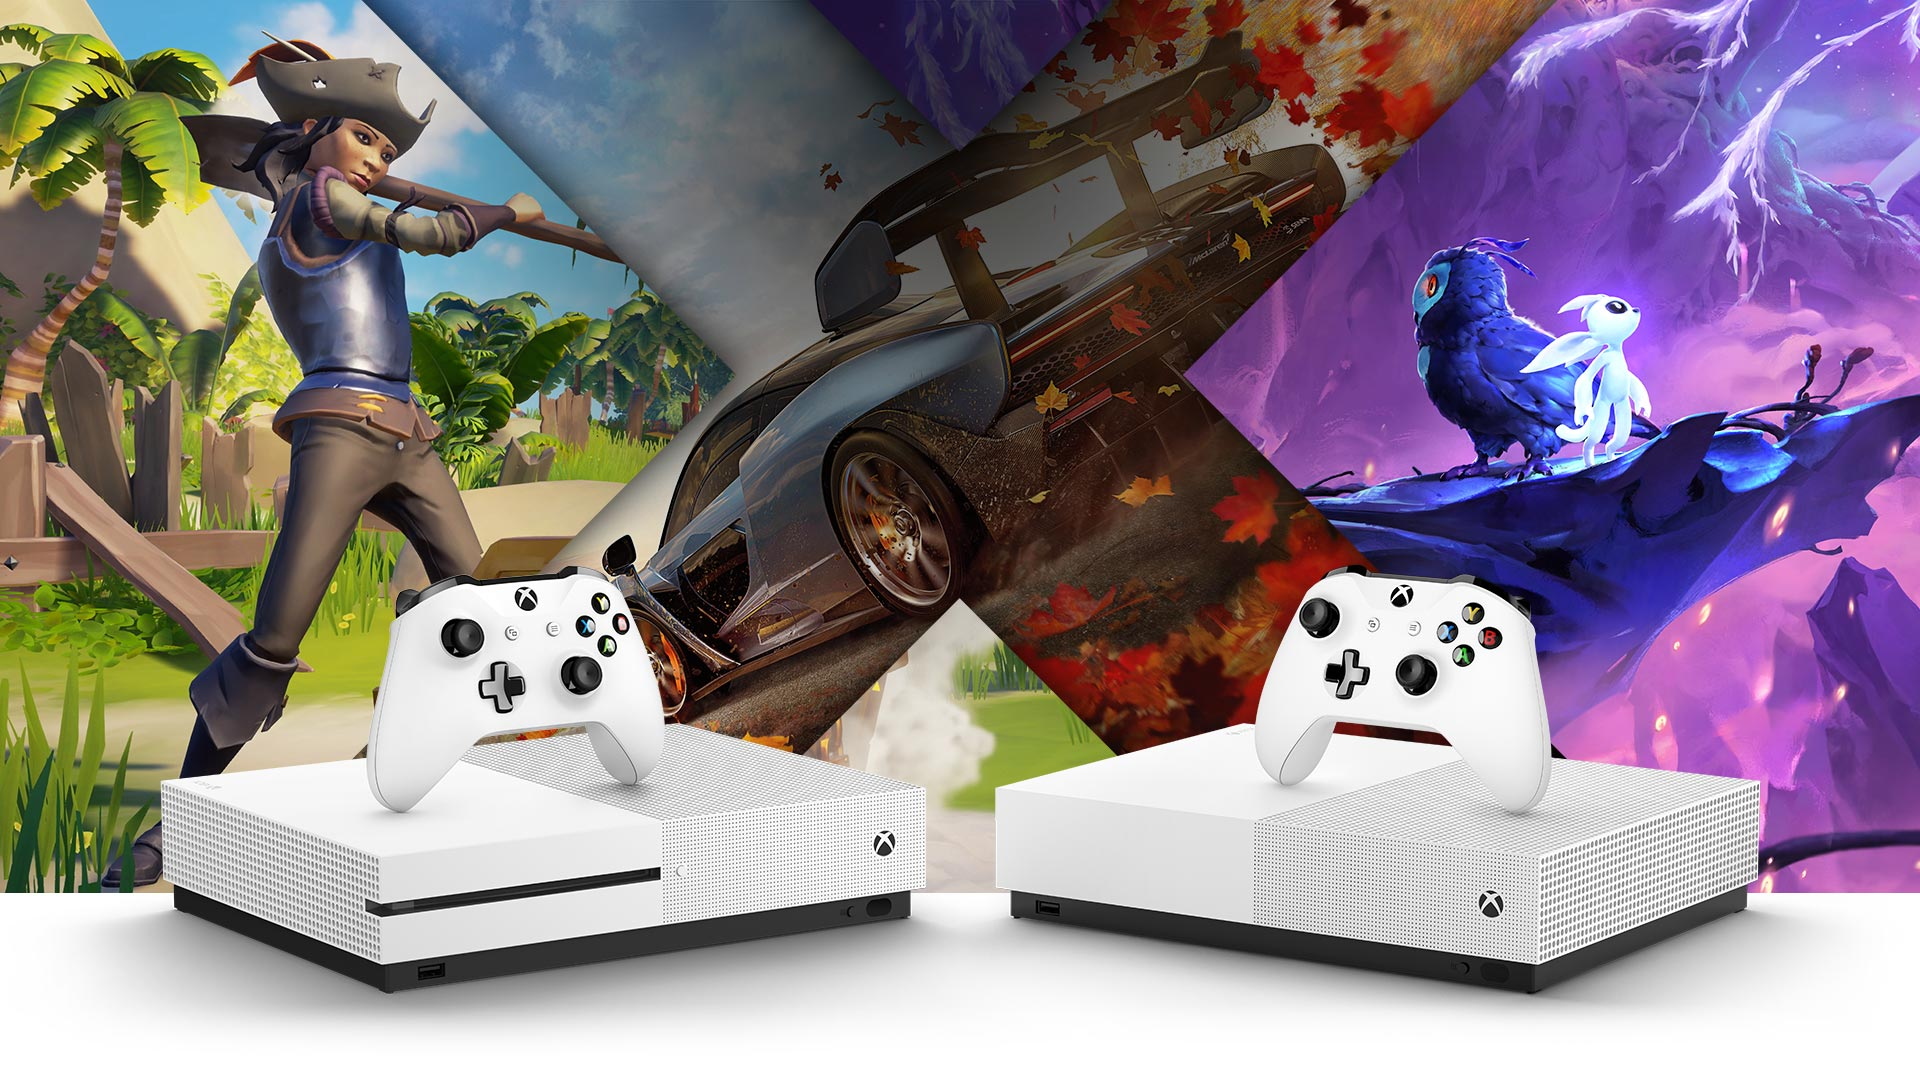 Pohľad spredu na konzolu Xbox One S a Xbox One S All Digital Edition, okolo ktorých je grafika z hier Sea of Thieves, Forza Horizon 4, Ori a The Will of Wisps